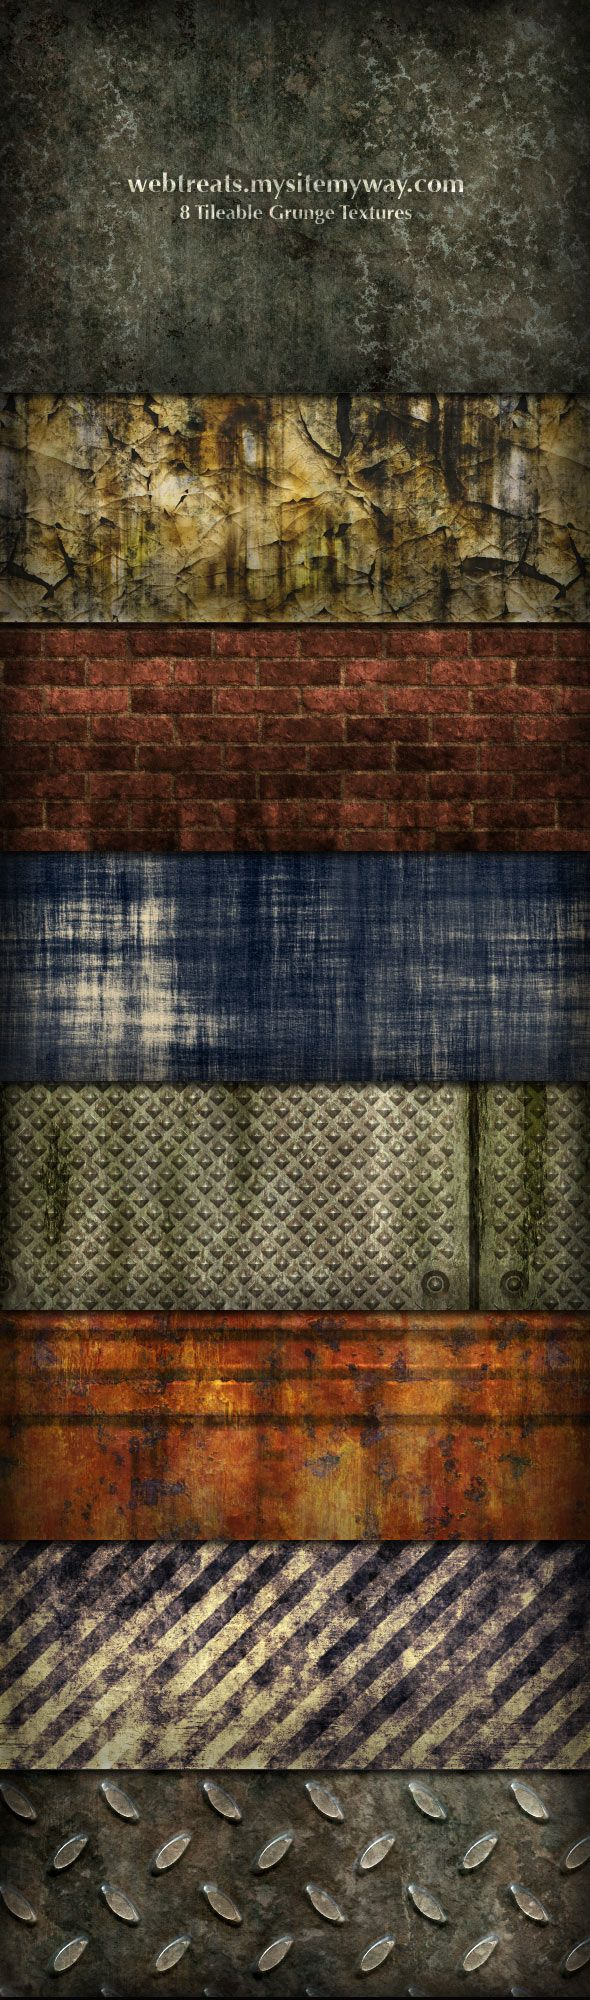 Grunge Textures and Patterns by WebTreatsETC.deviantart.com on @deviantART